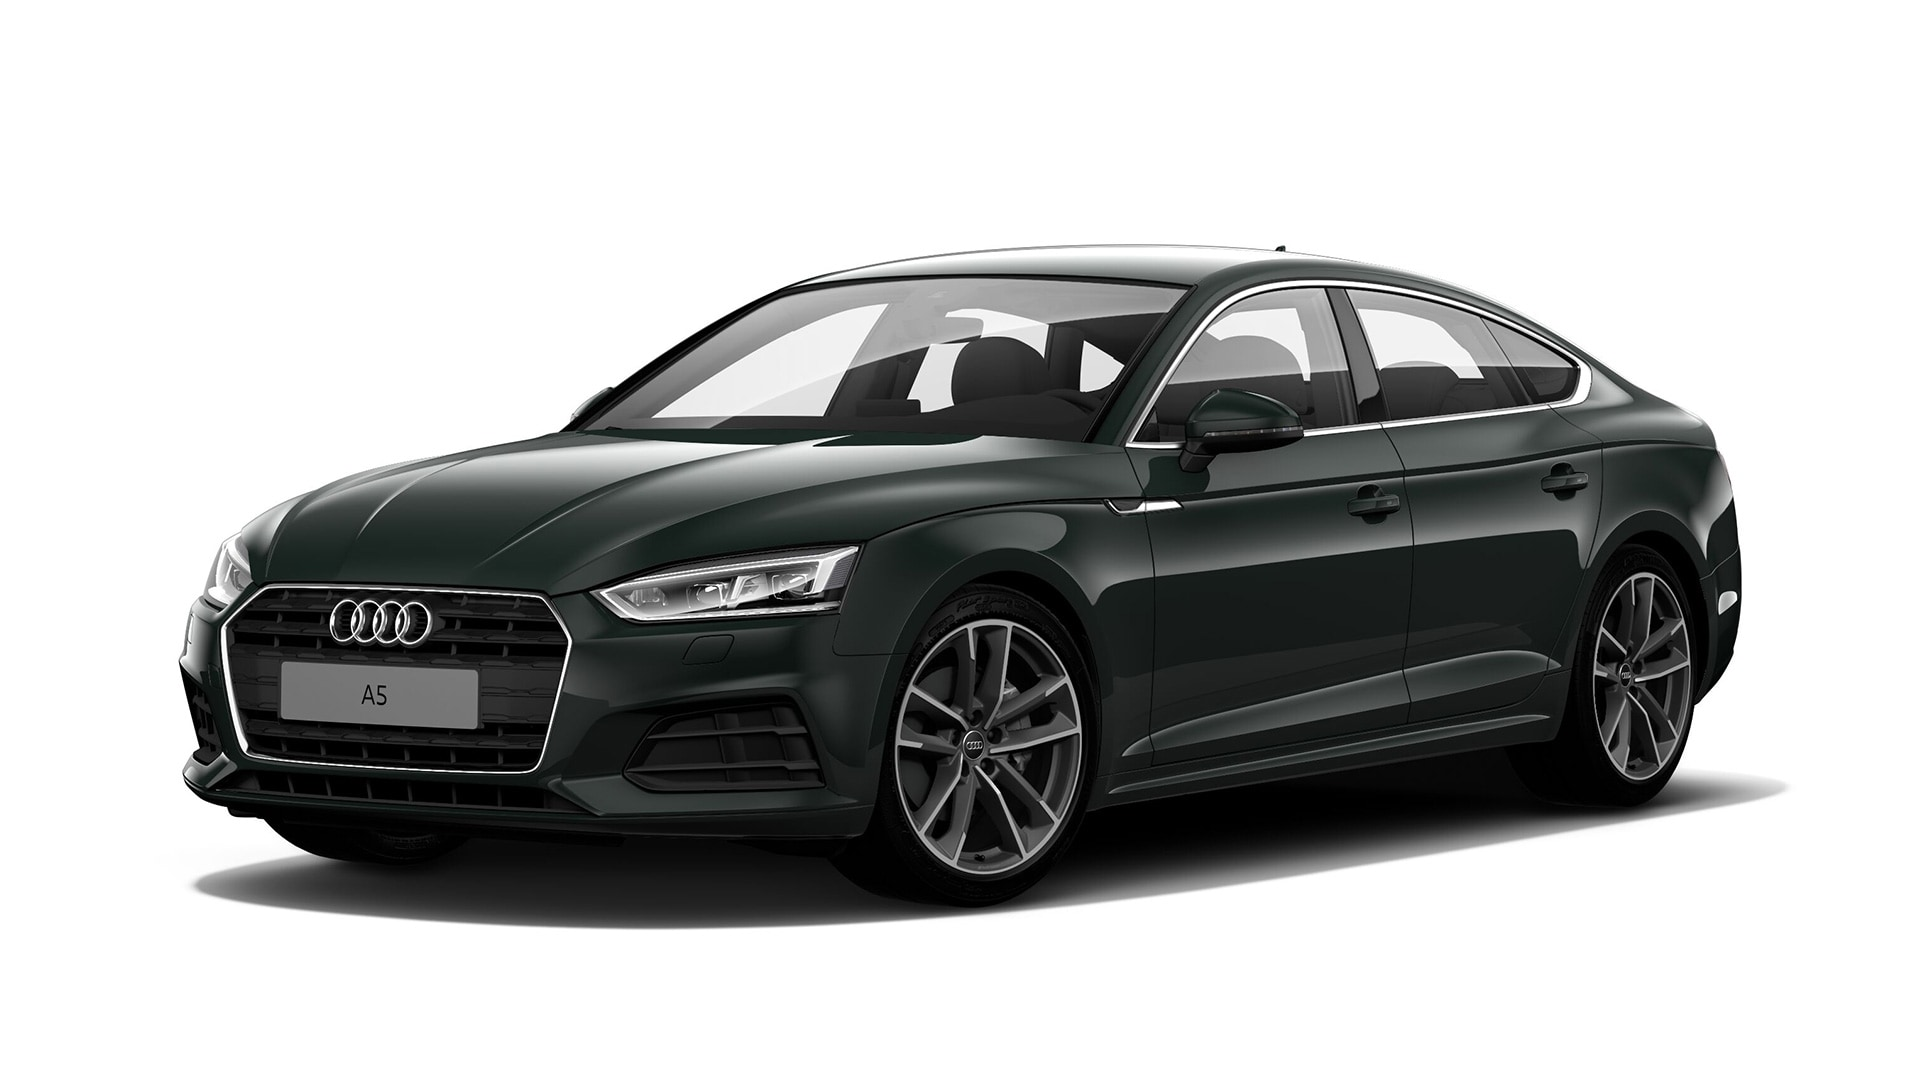 Audi A5 Sportback in Goodwood green, pearl effect